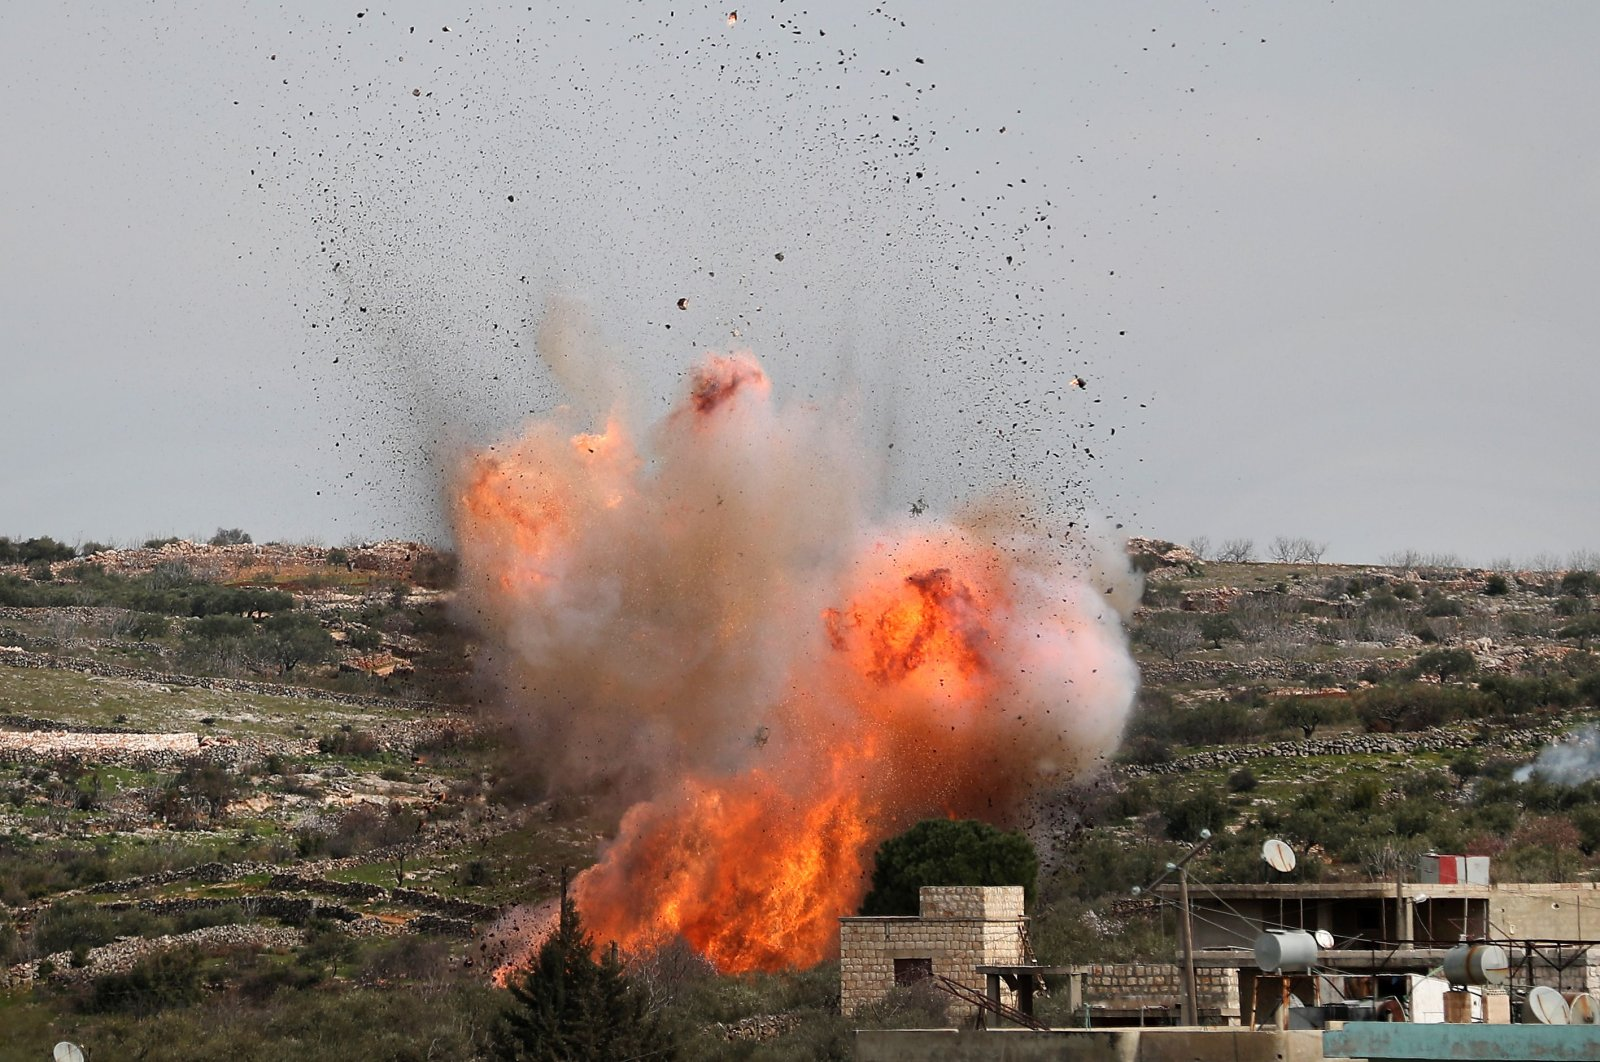 A picture taken on March 5, 2020 shows an explosion following airstrikes on the village of al-Bara in the southern part of Syria's northwestern Idlib province. (AFP File Photo)